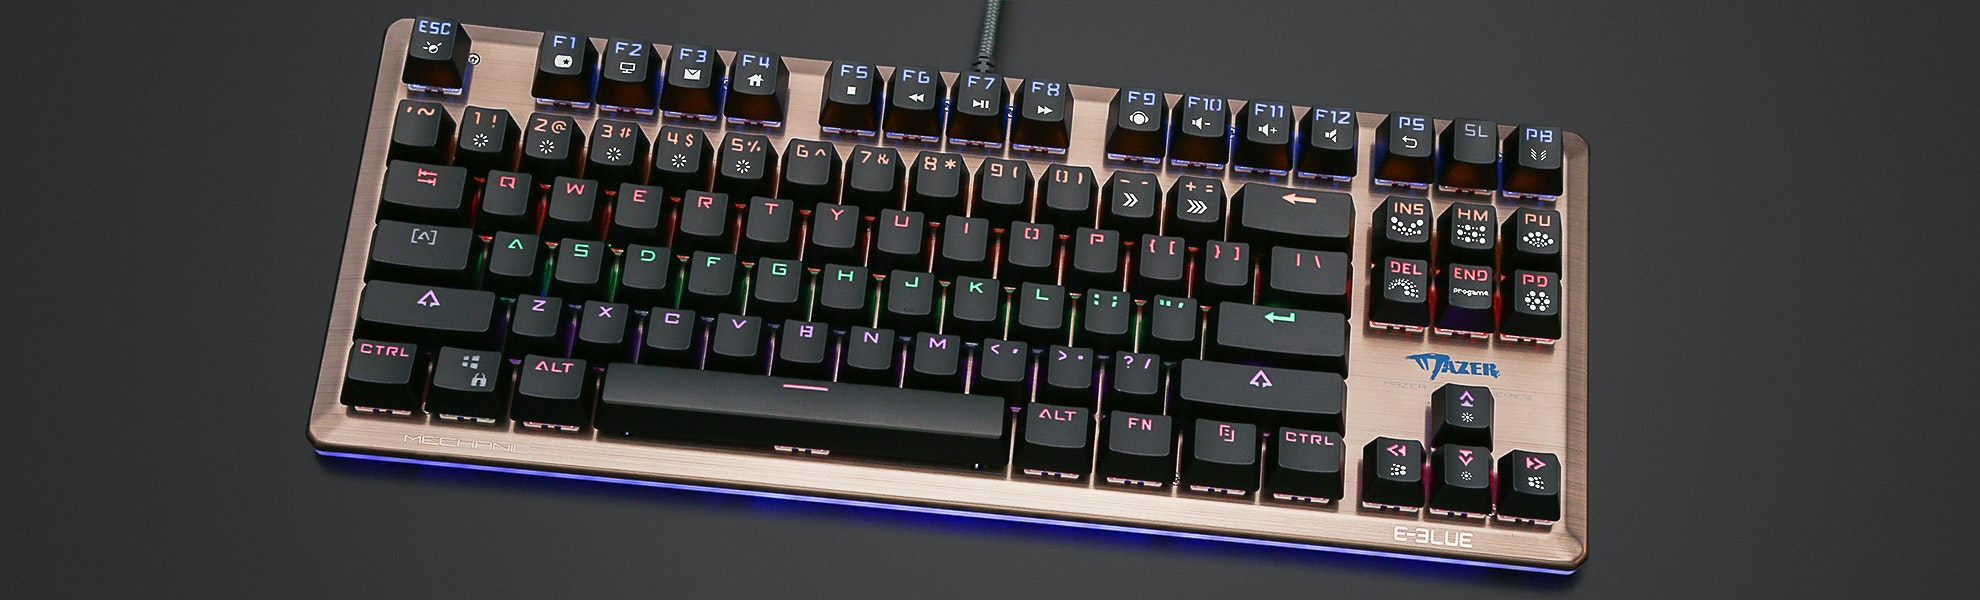 E-Blue Mazer Mechanical Gaming Keyboard